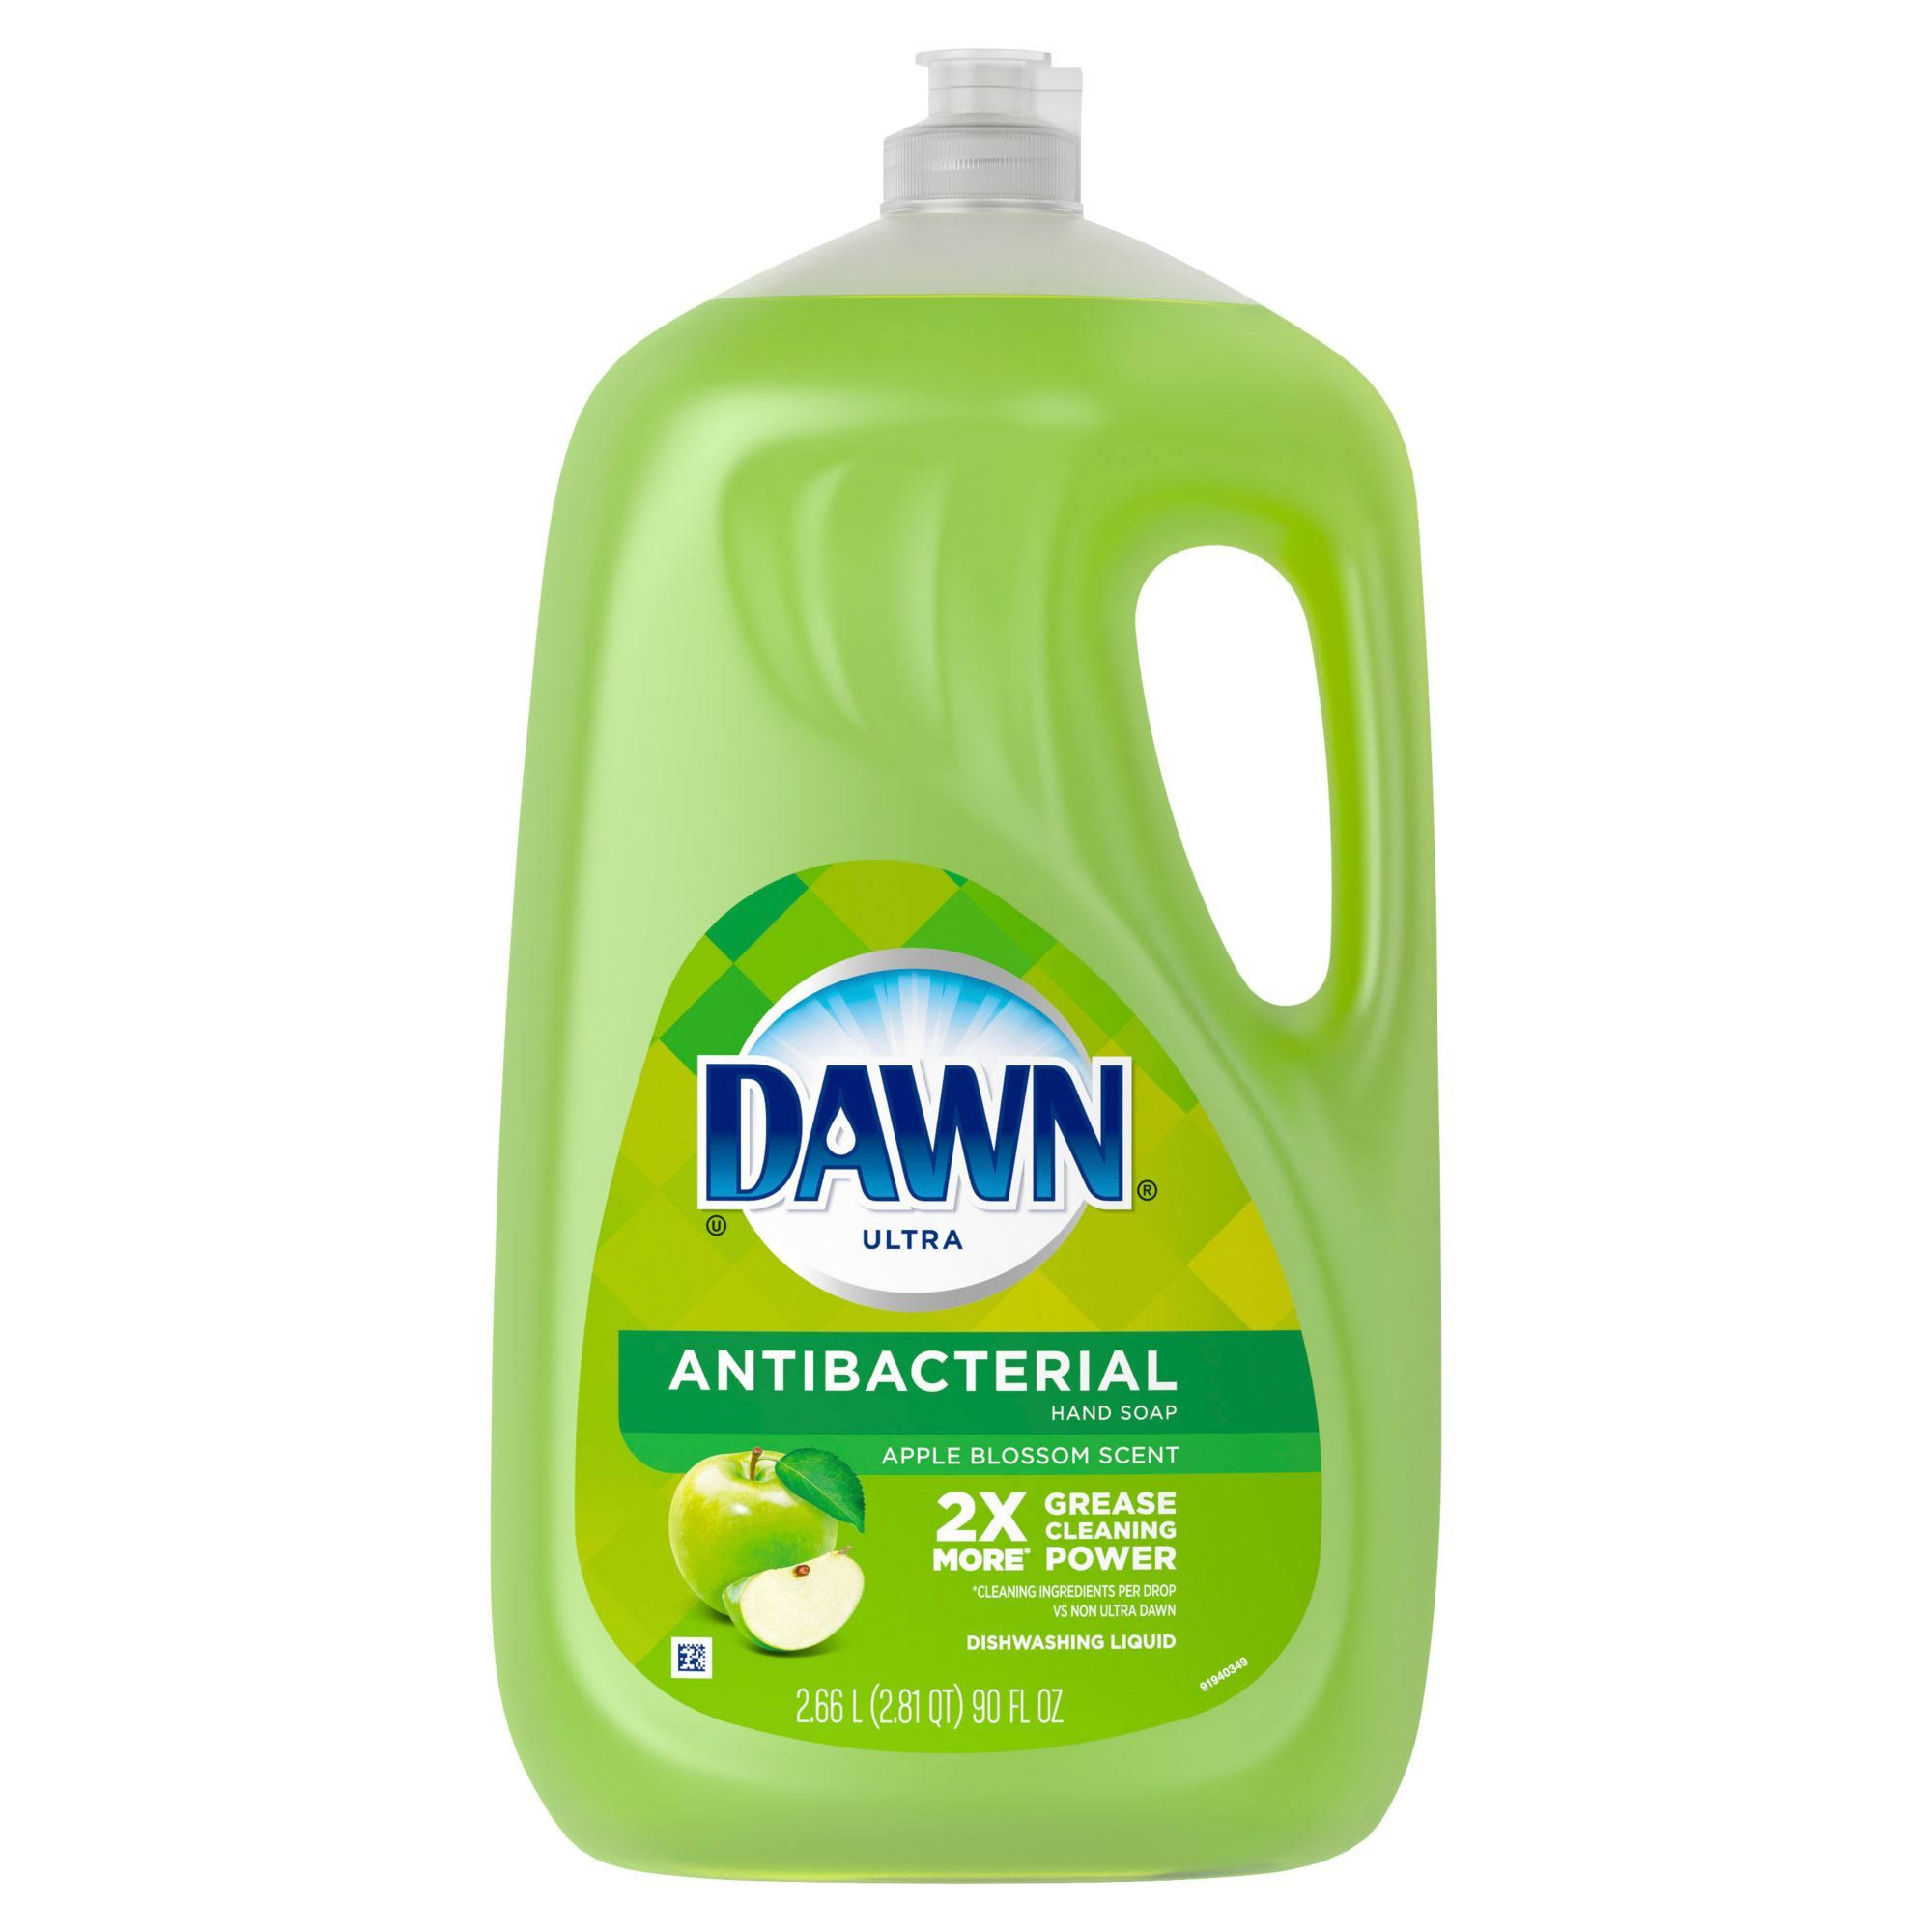 Dawn Ultra Antibacterial Dishwashing Liquid Soap - Apple Blossom, 90oz